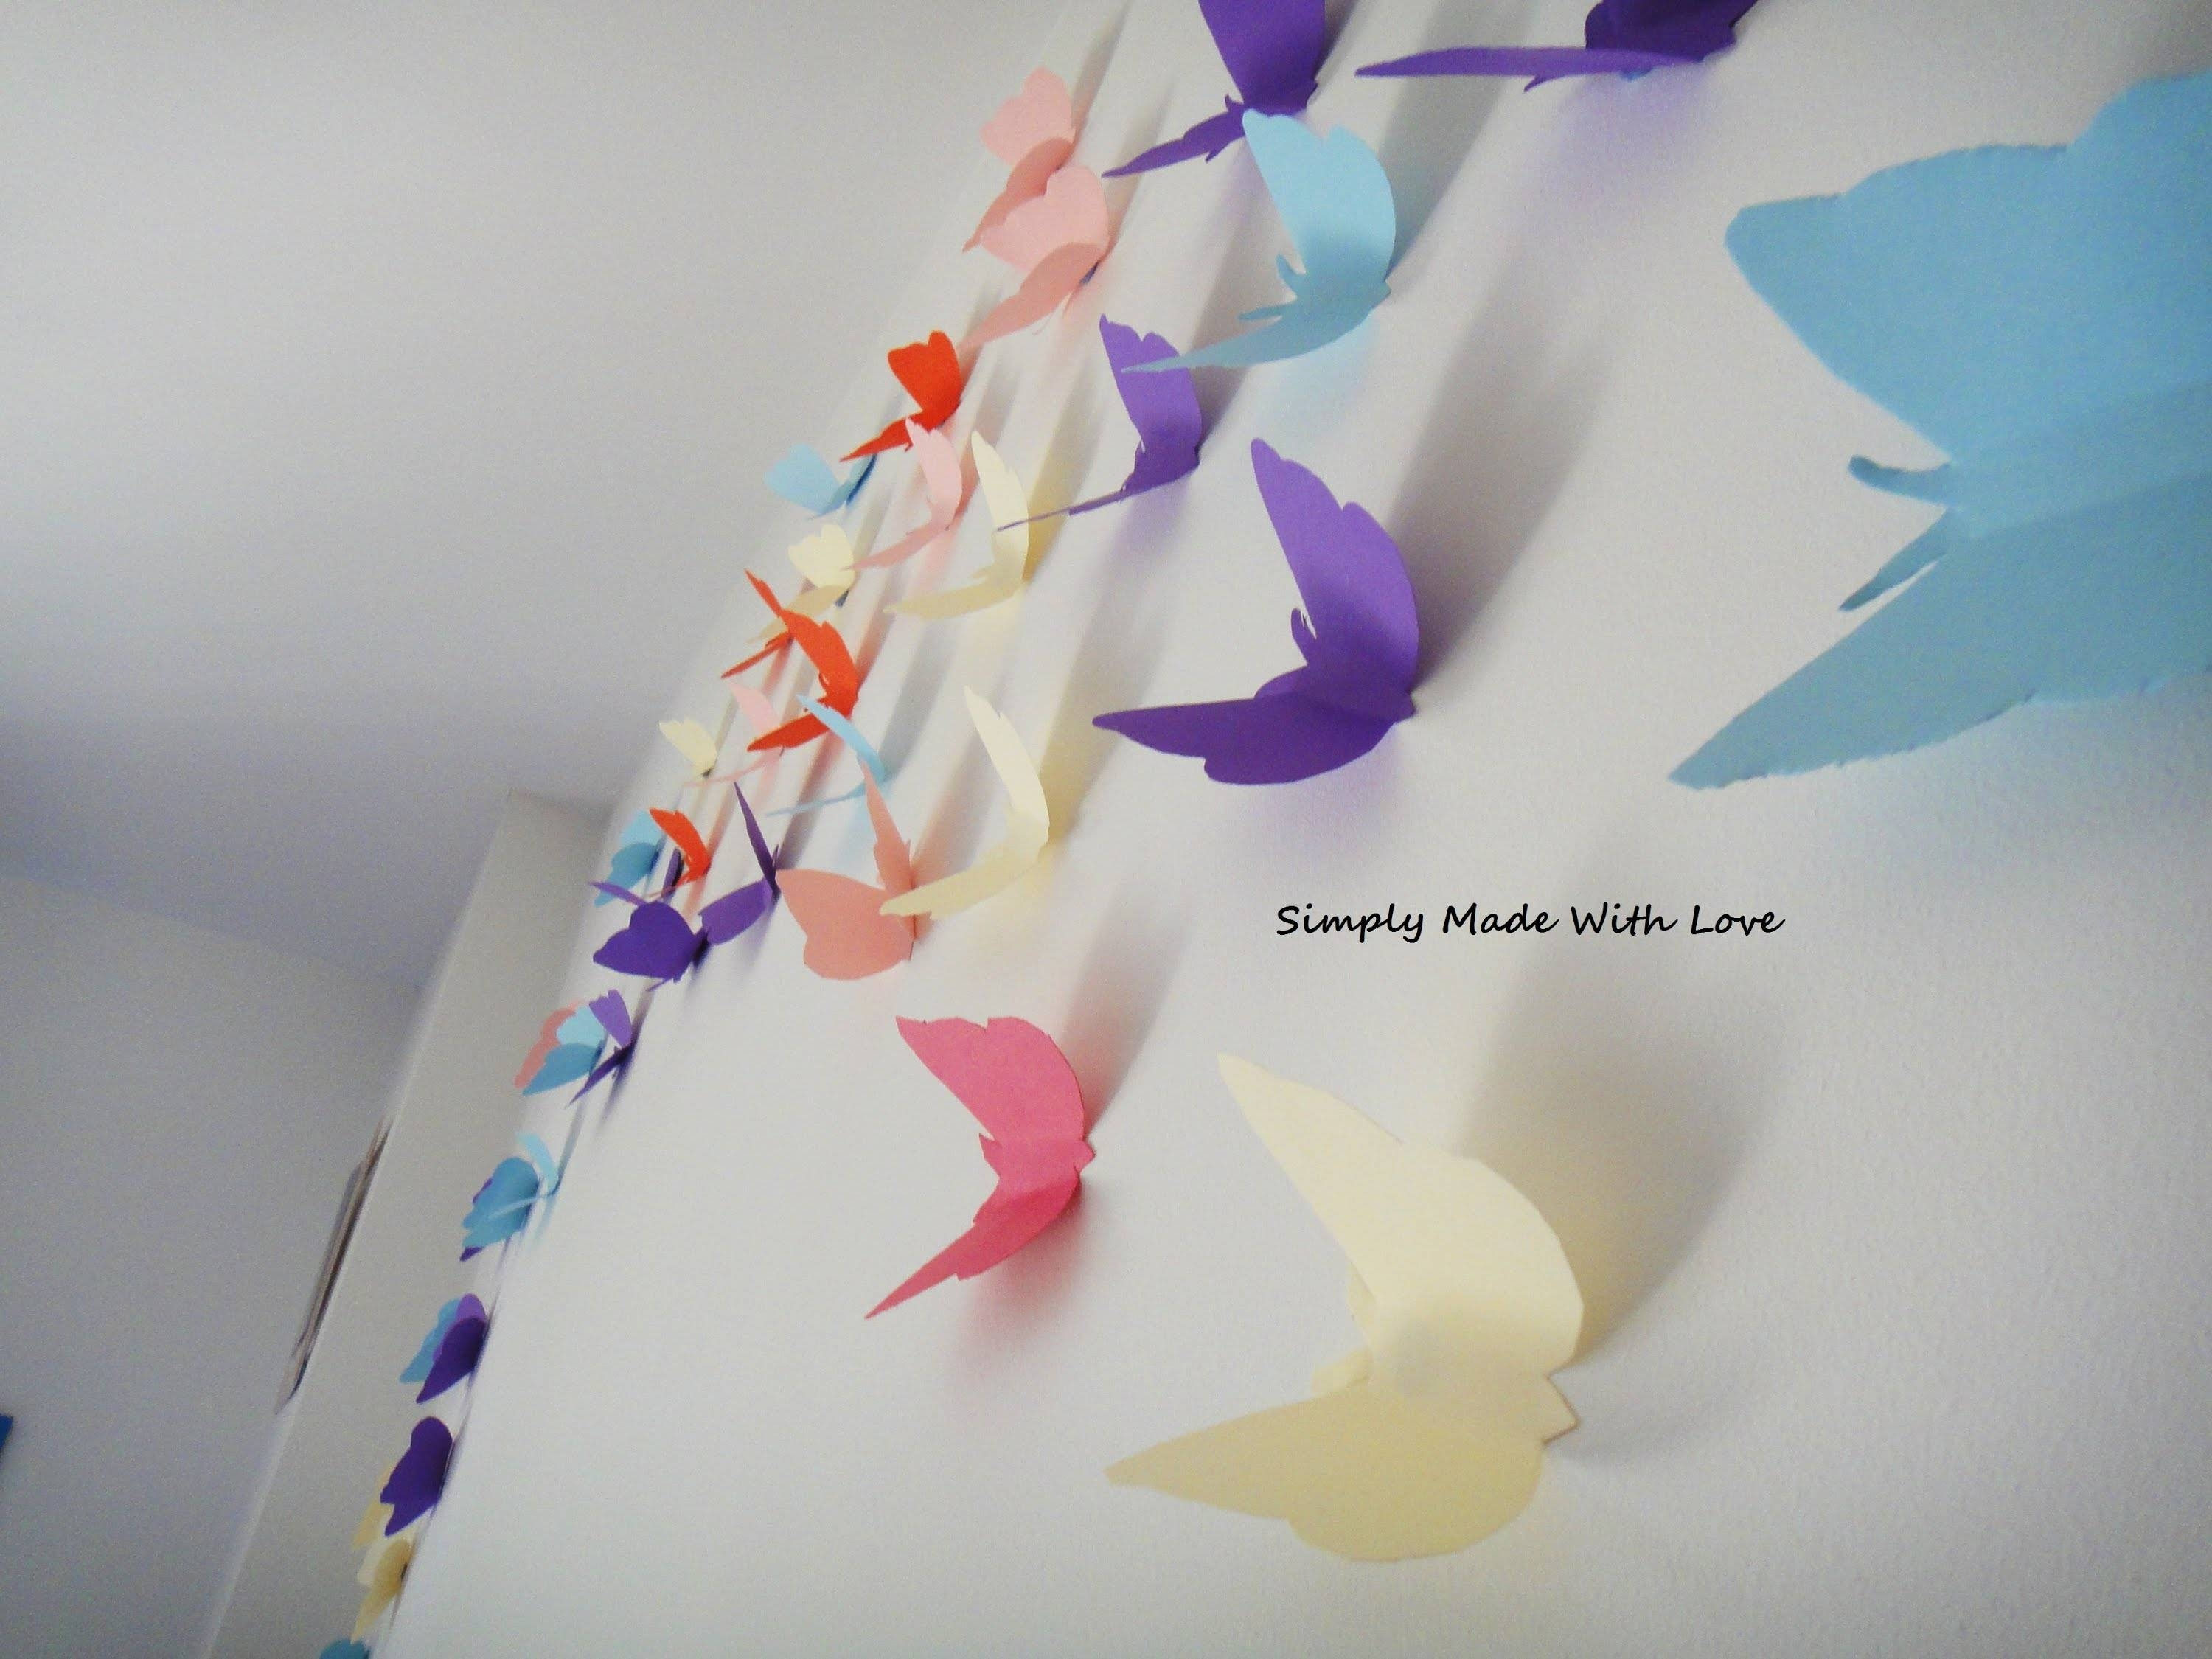 Diy How To Make Beautiful, Cheap And Easy, 3D Wall Decoration With Throughout Recent Diy 3D Wall Art Butterflies (View 14 of 20)